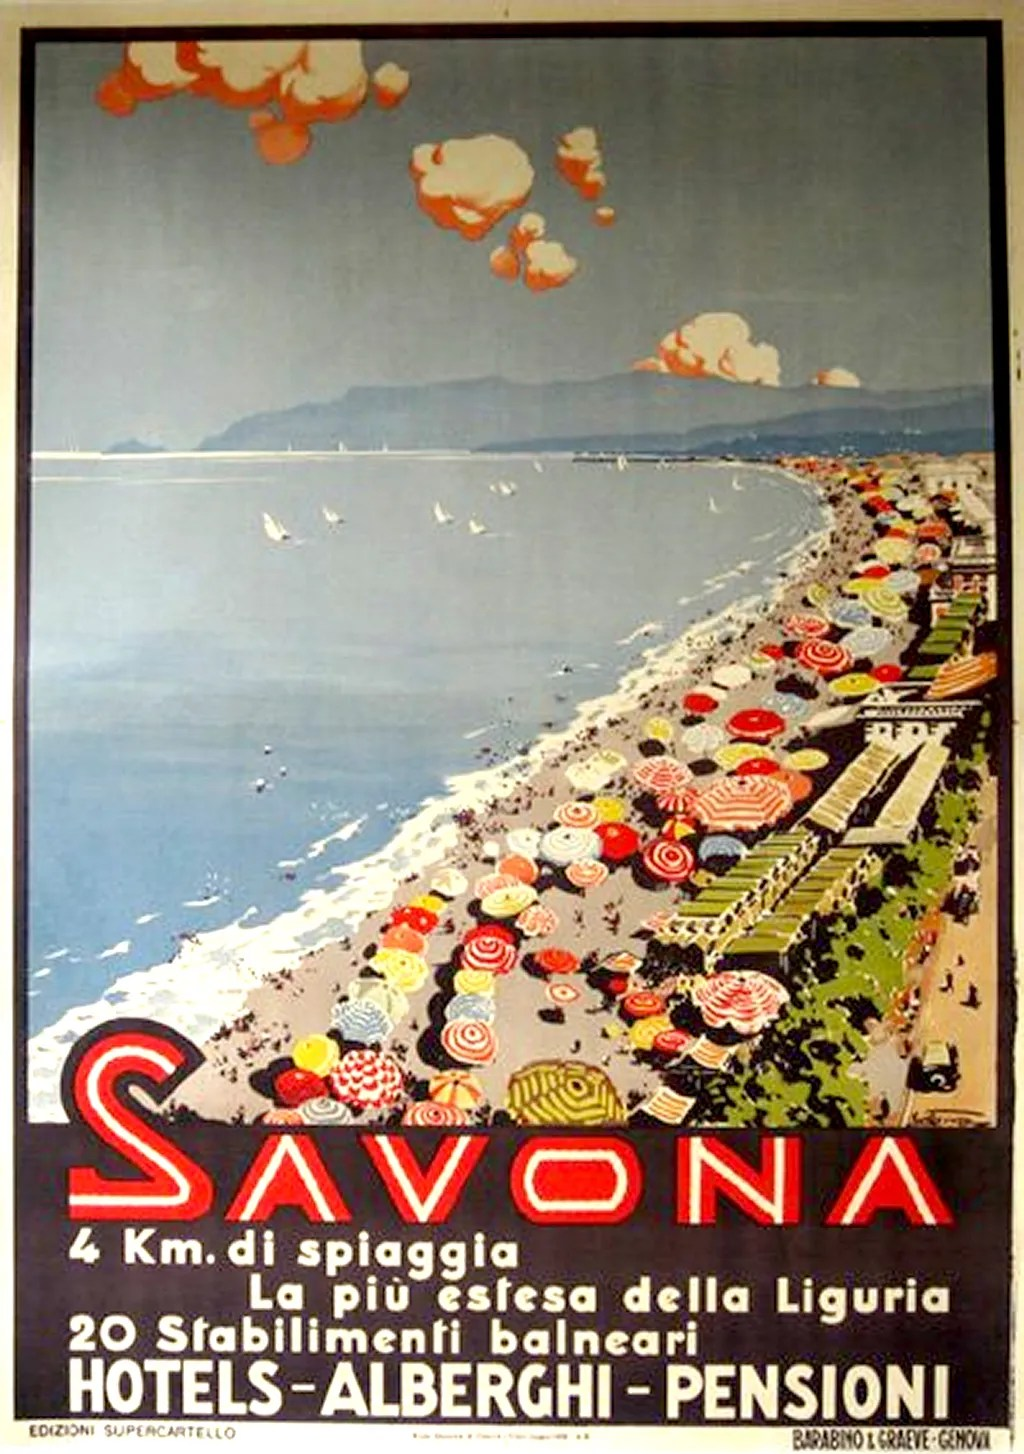 Vintage Travel Posters Impossibly Glamorous Beach Vacations  Cond Nast Traveler